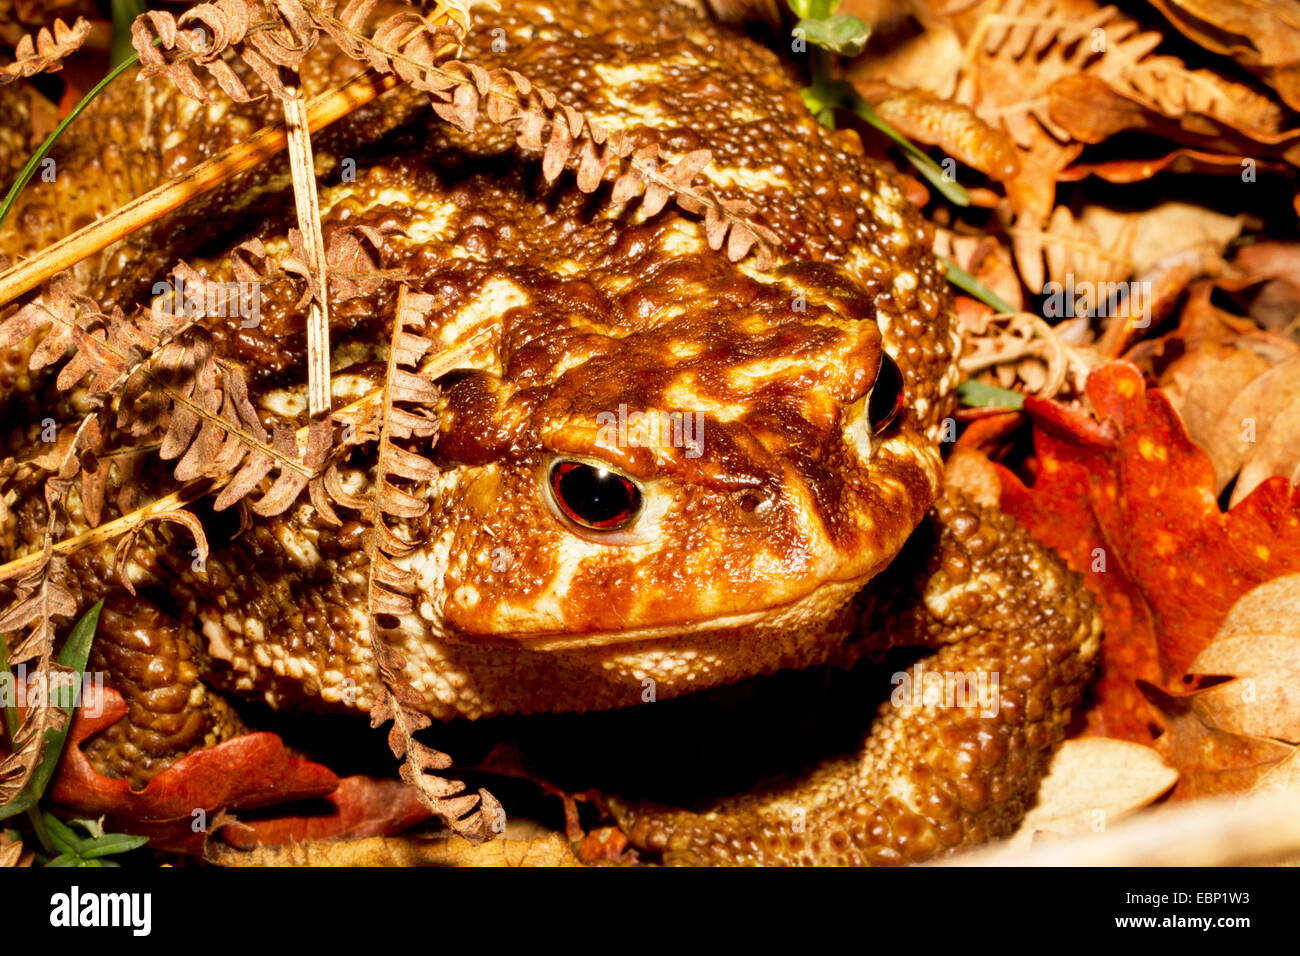 European common toad (Bufo bufo spinosus), toad under foliage, Portugal, Peneda-Geres National Park - Stock Image